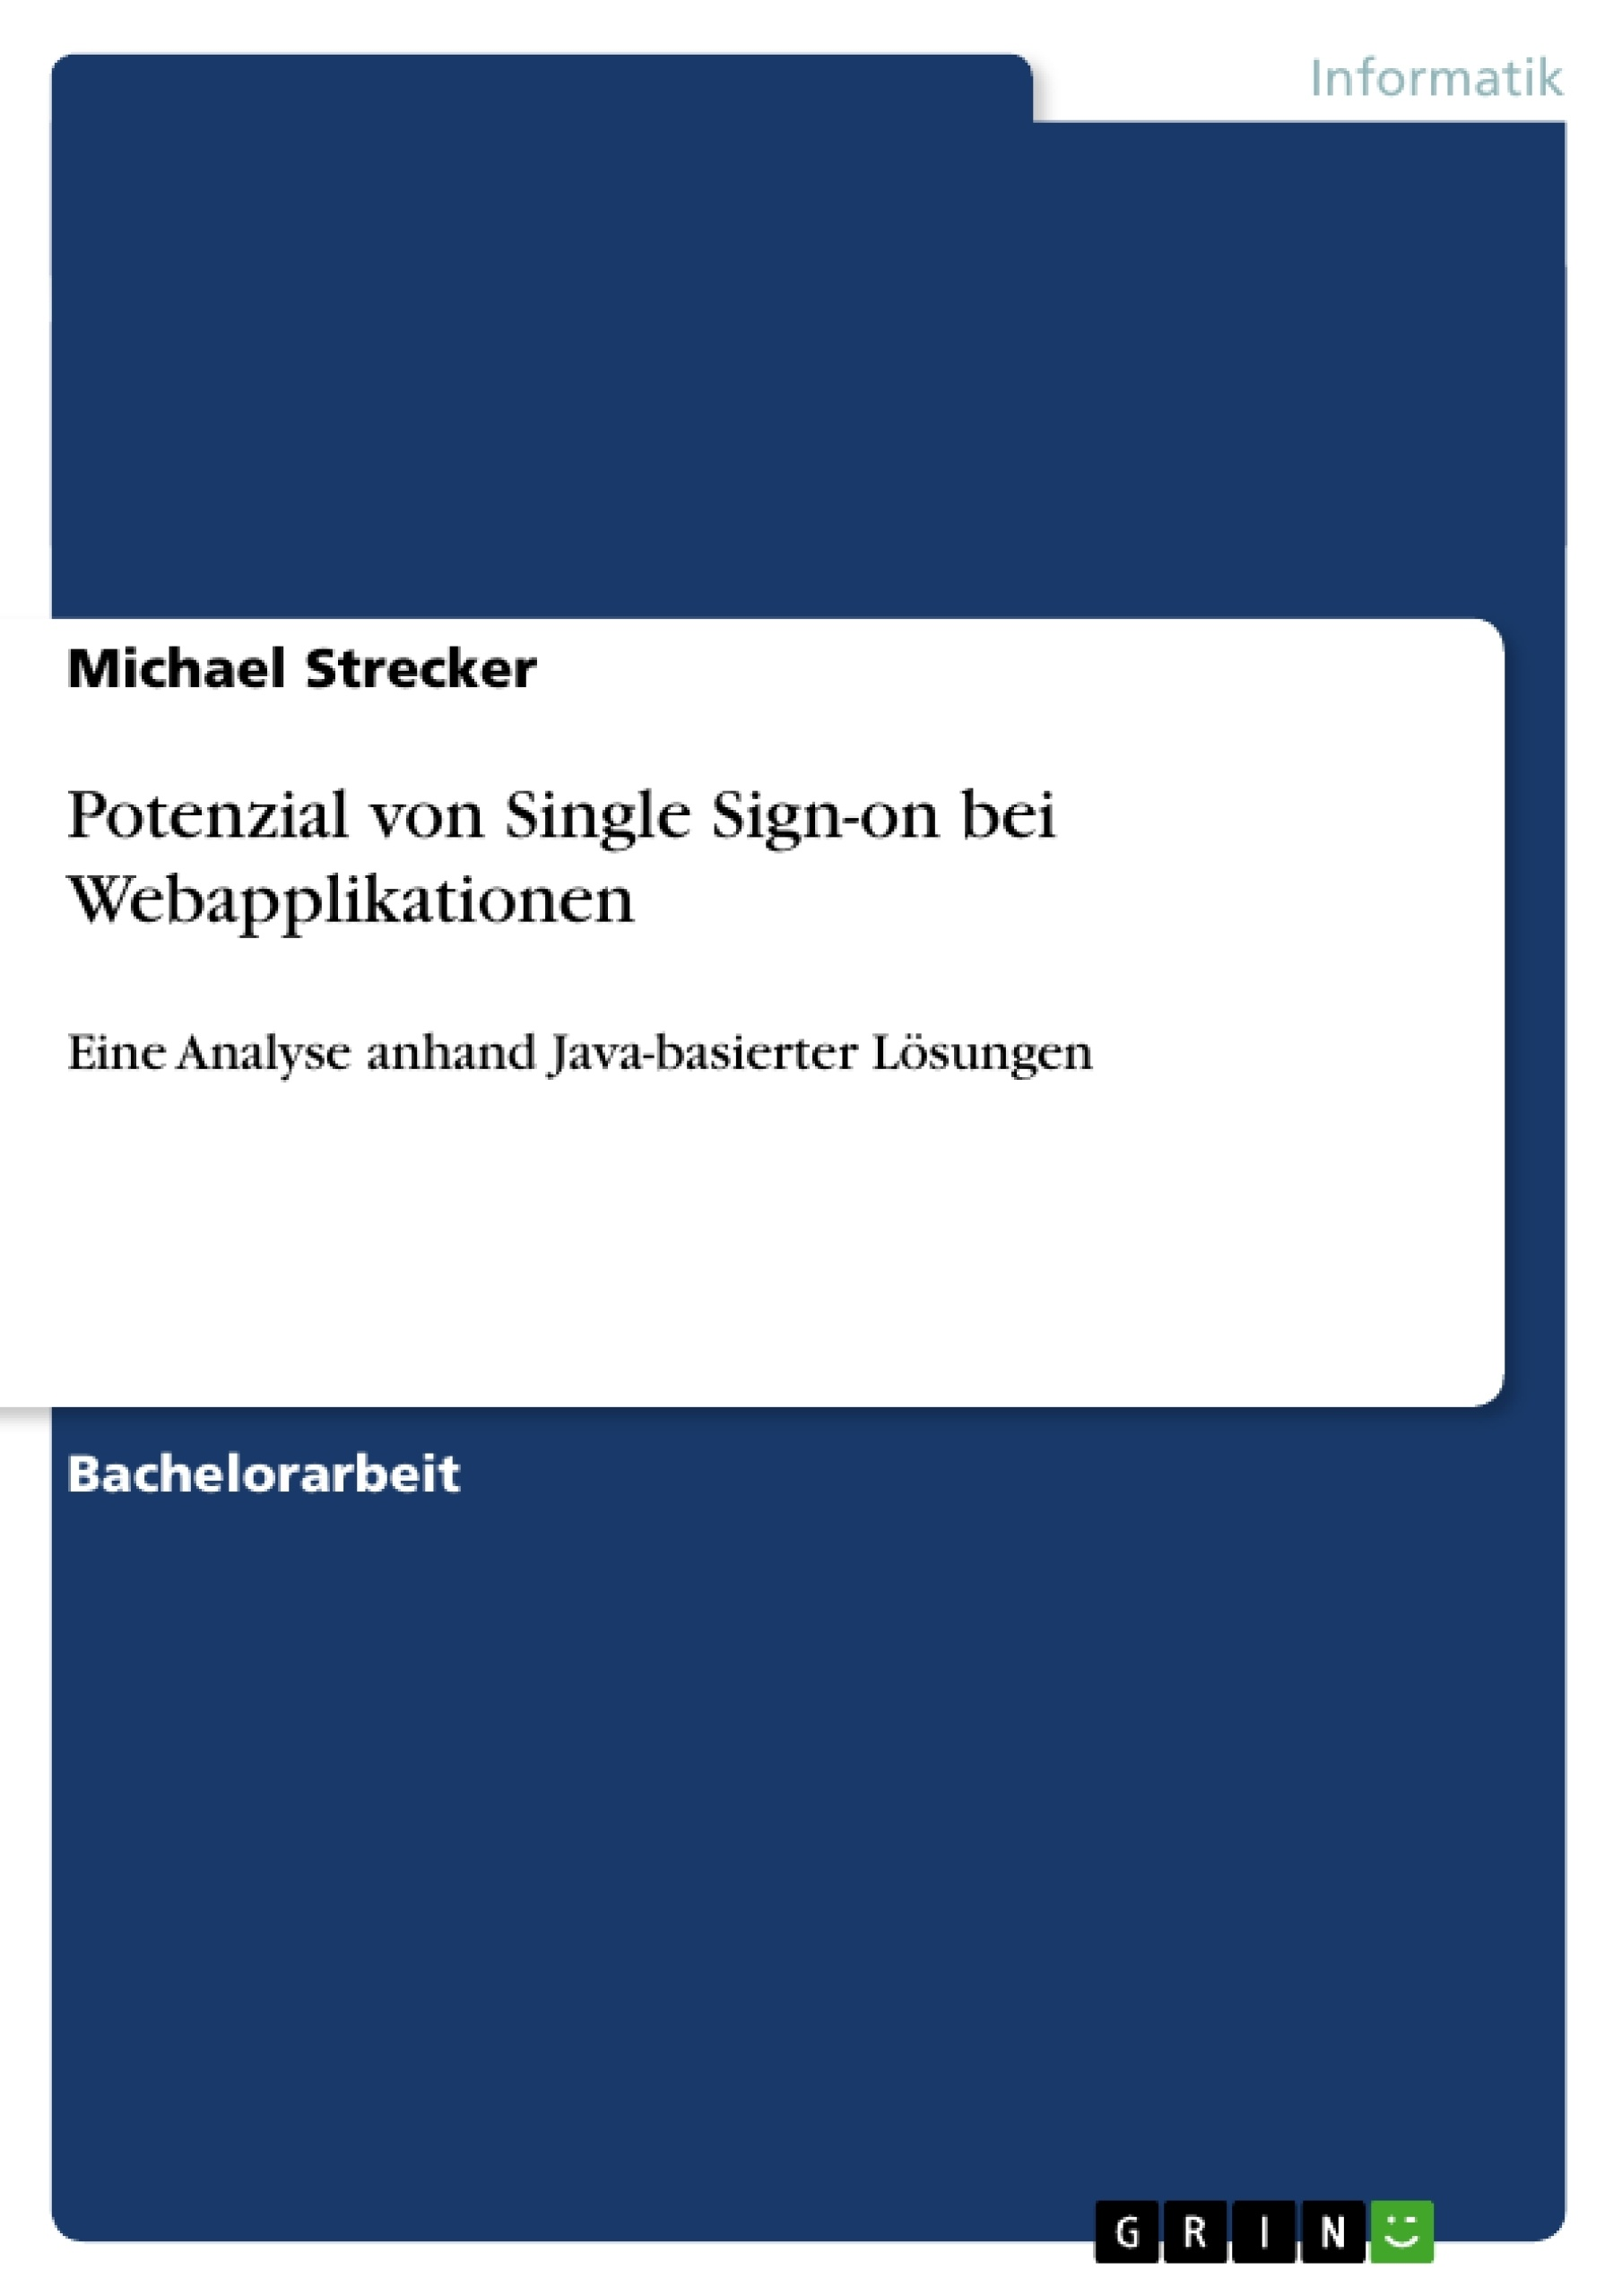 Titel: Potenzial von Single Sign-on bei Webapplikationen